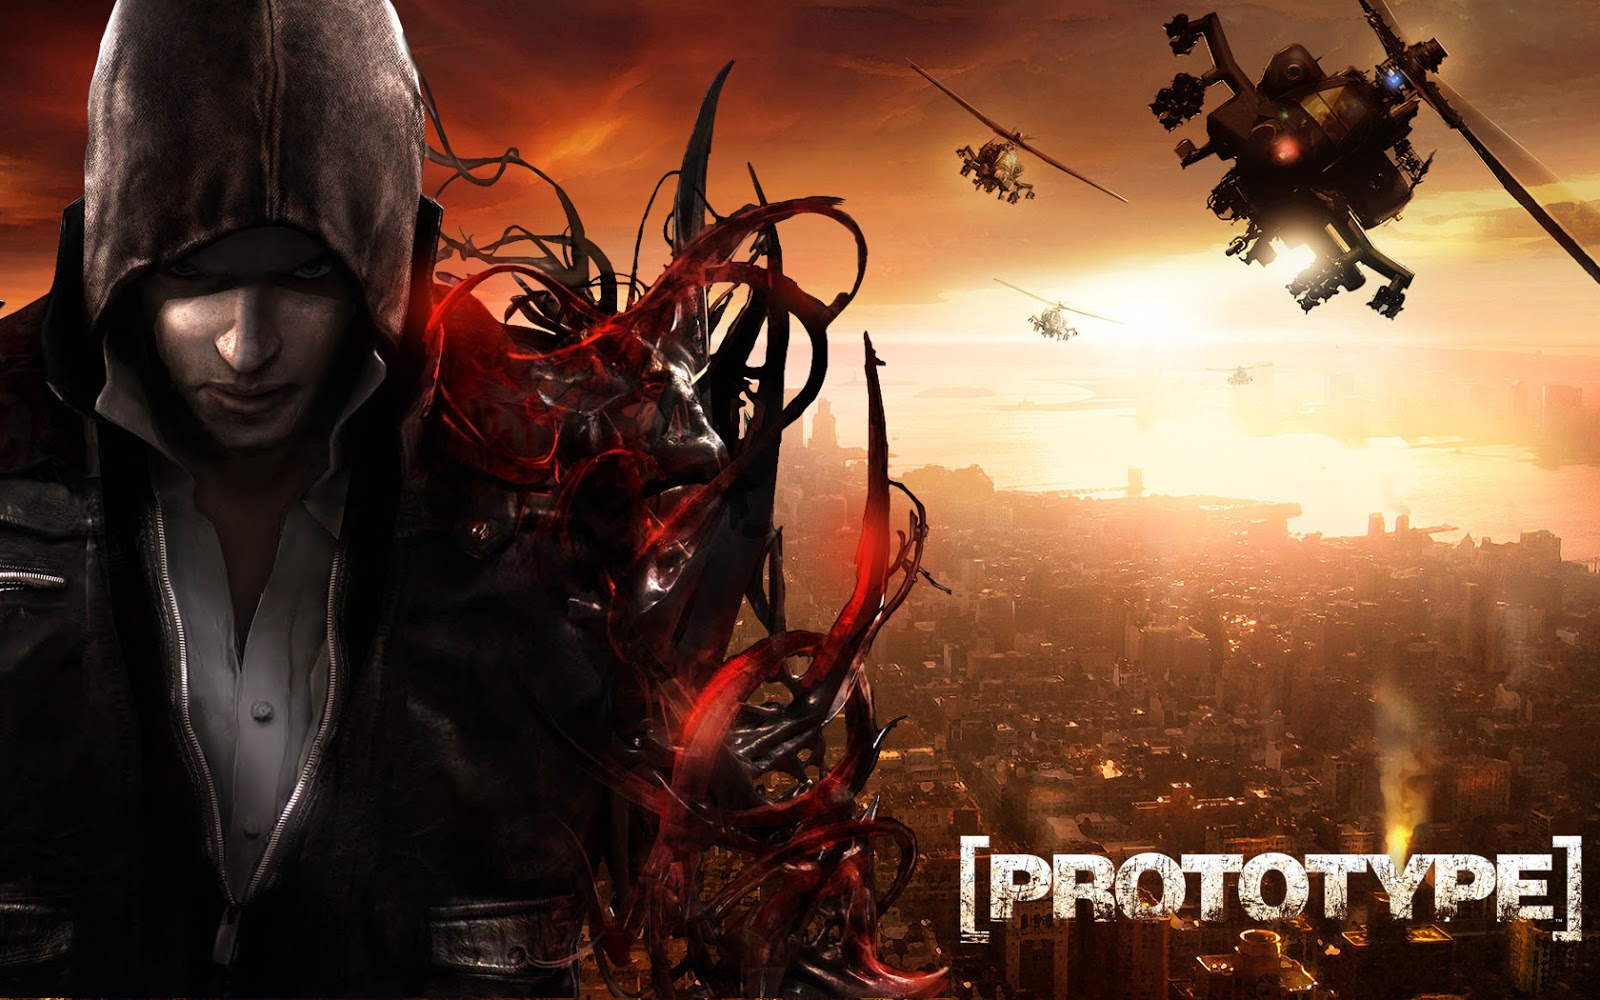 Prototype Full Pc Game Highly Compressed (1.8GB) Direct Download ...